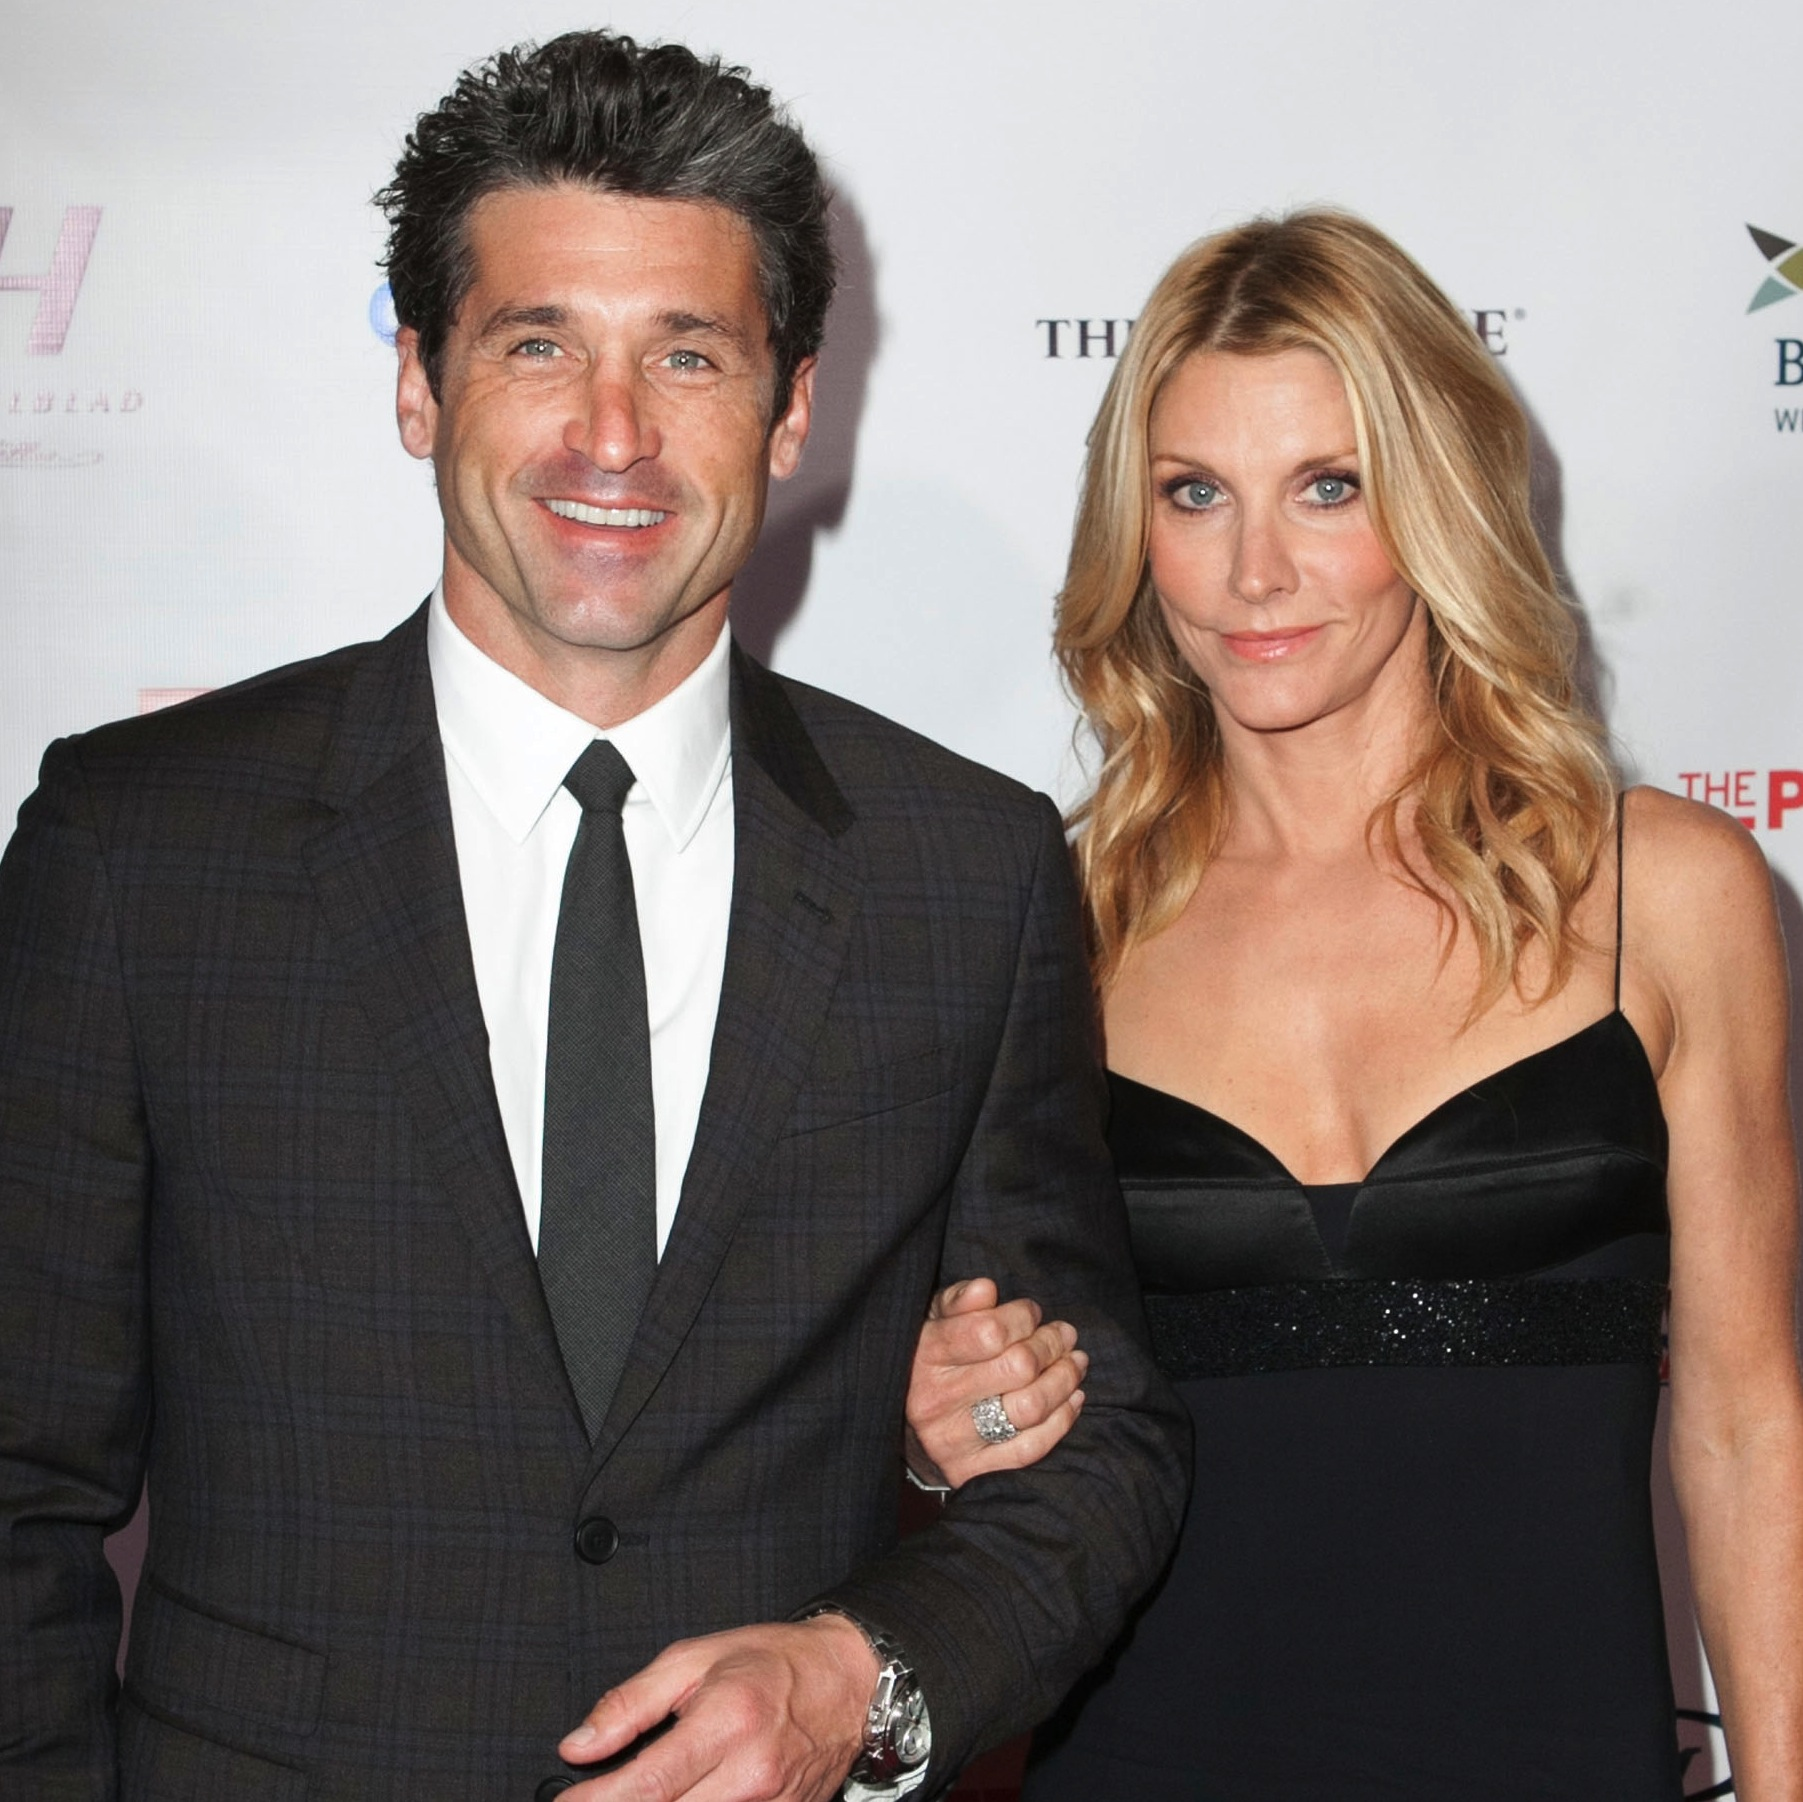 Patrick Dempsey And Wife Jillian Are Ready To Welcome Baby No 4